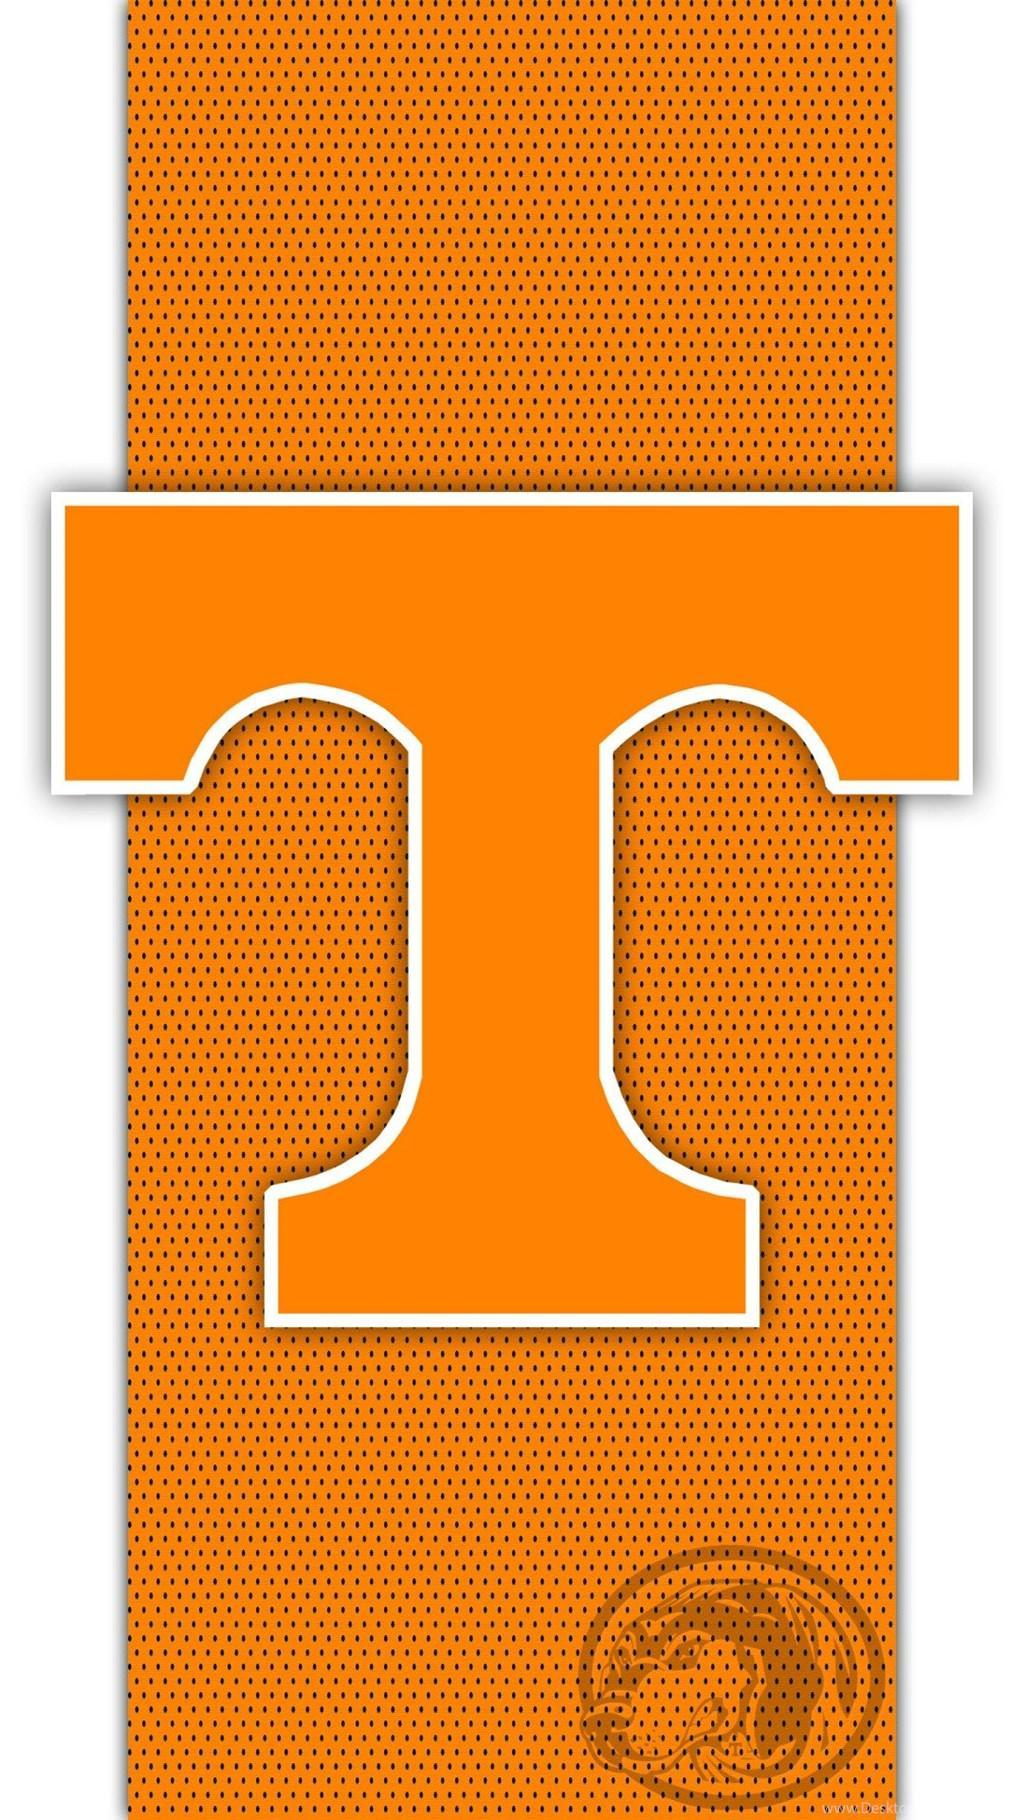 Tennessee Vols Wallpapers Group